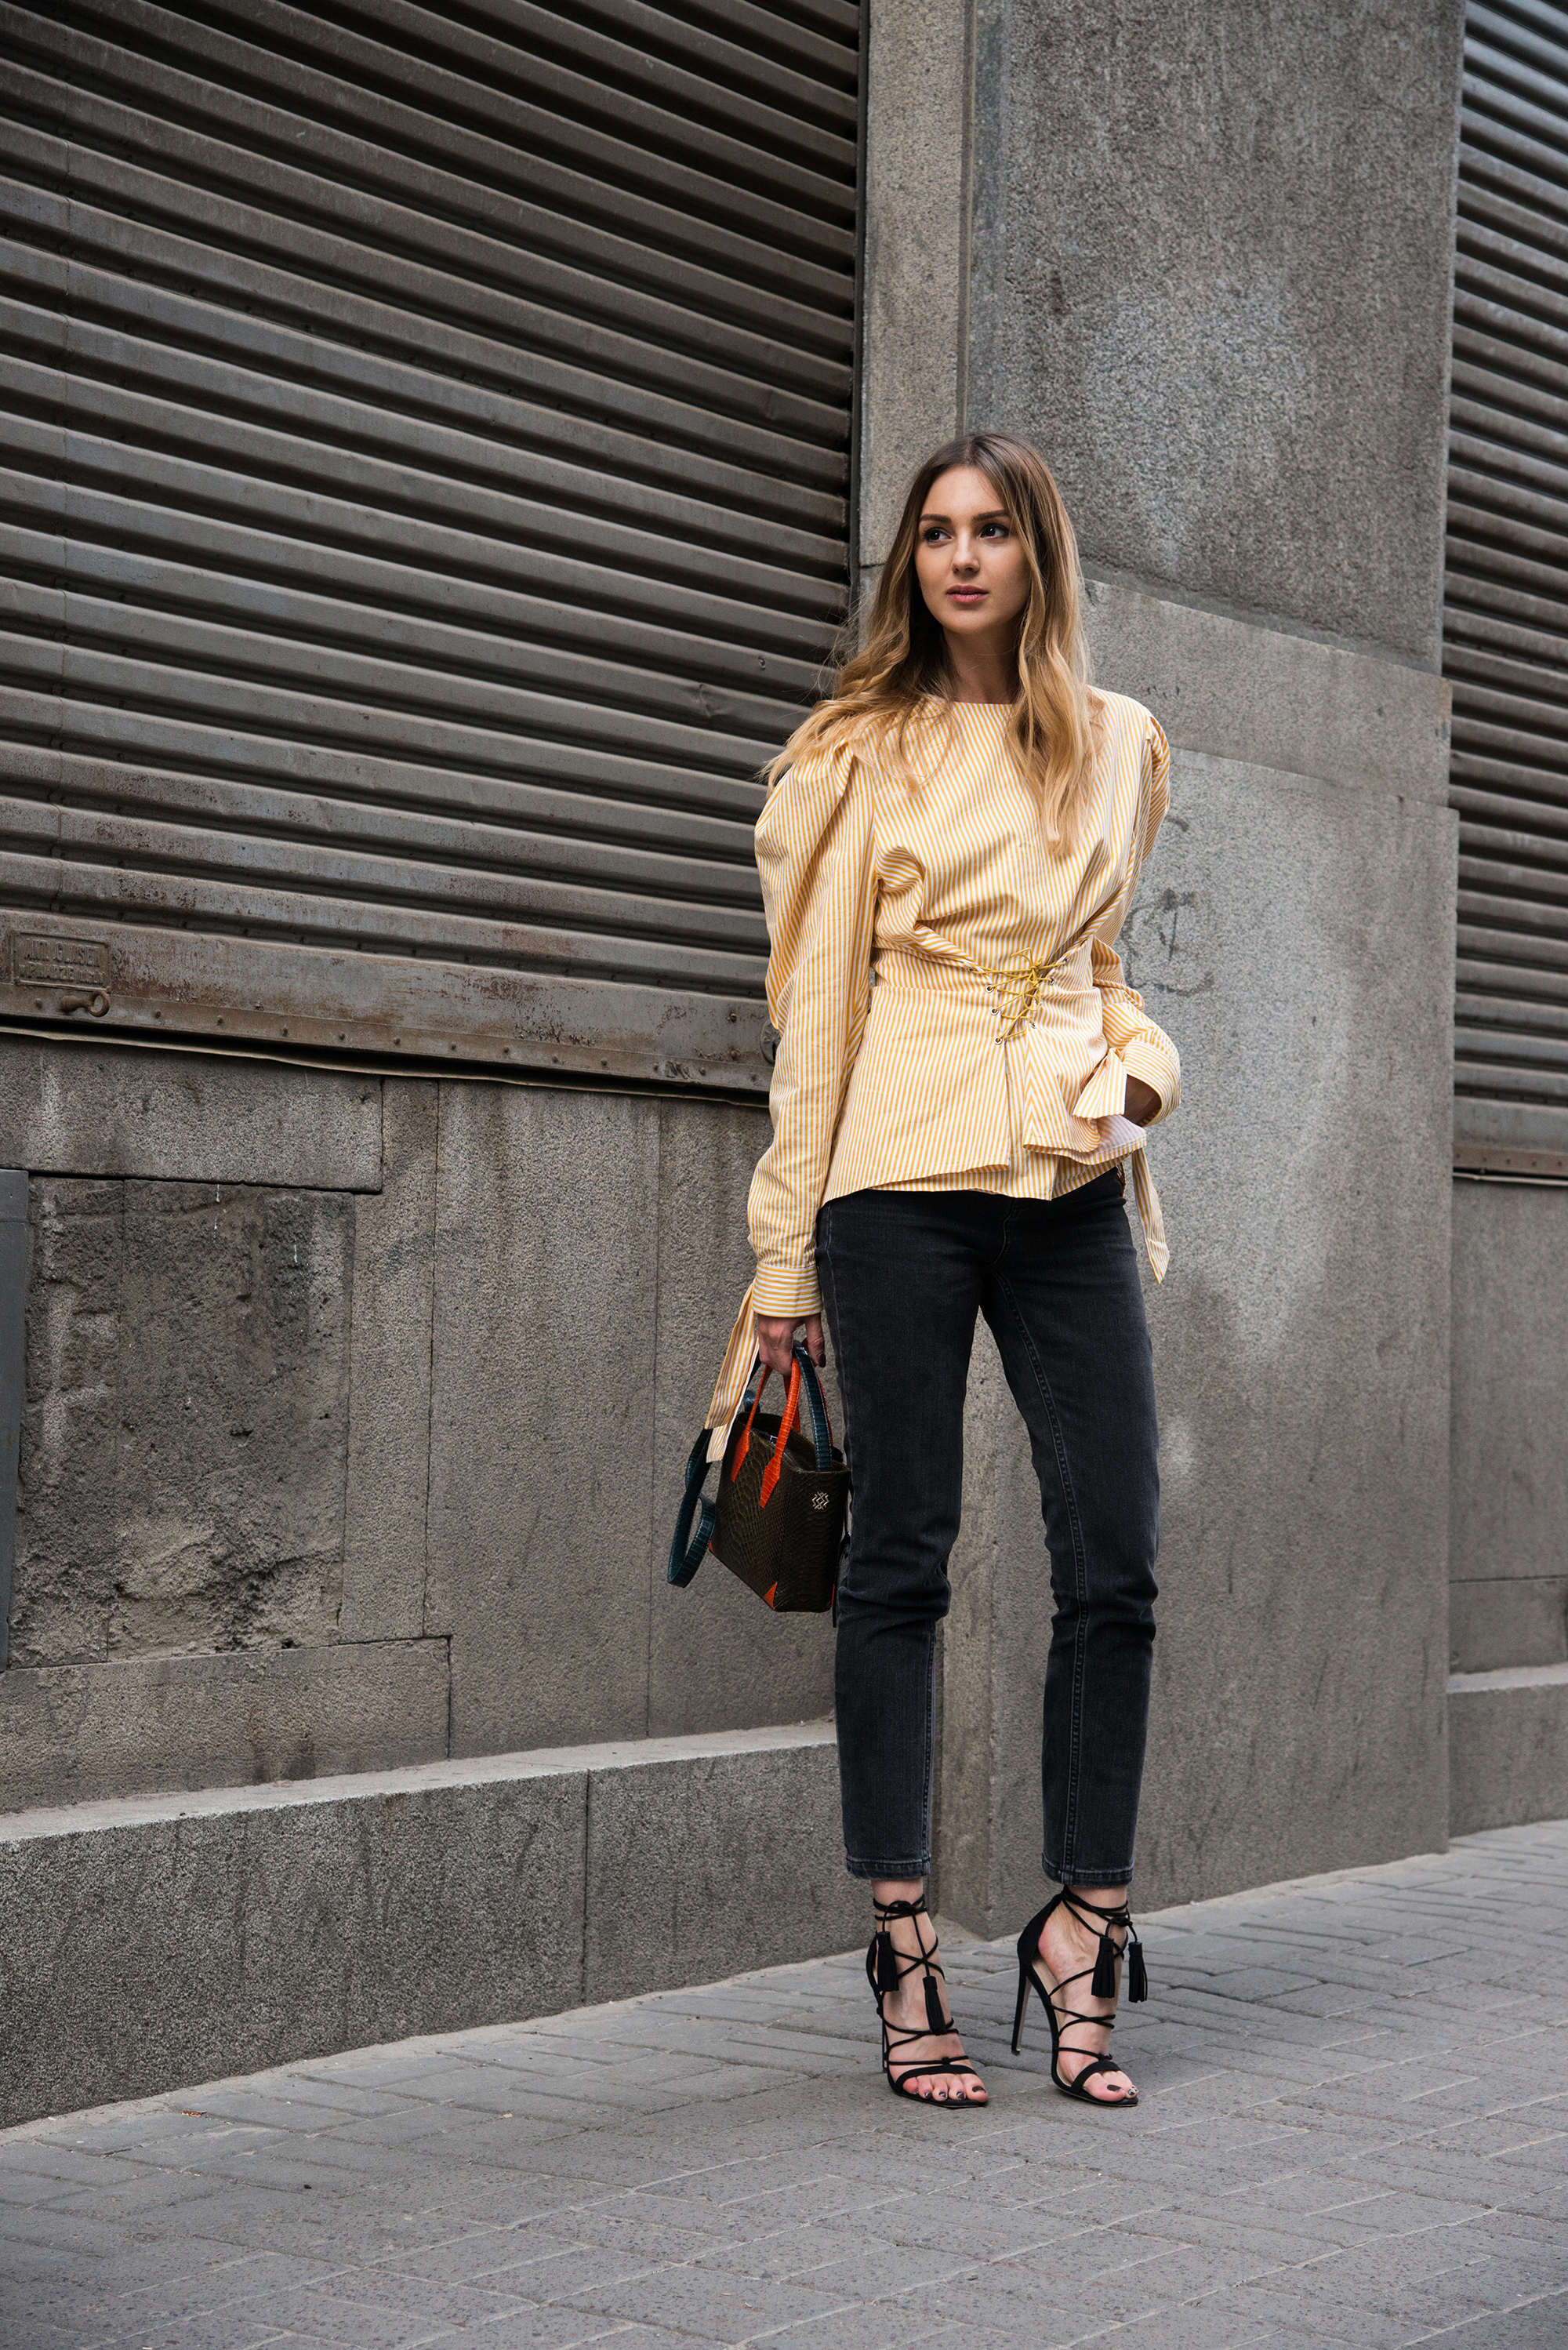 oversized-top-puffy-sleeves-lace-up-heels-street-style